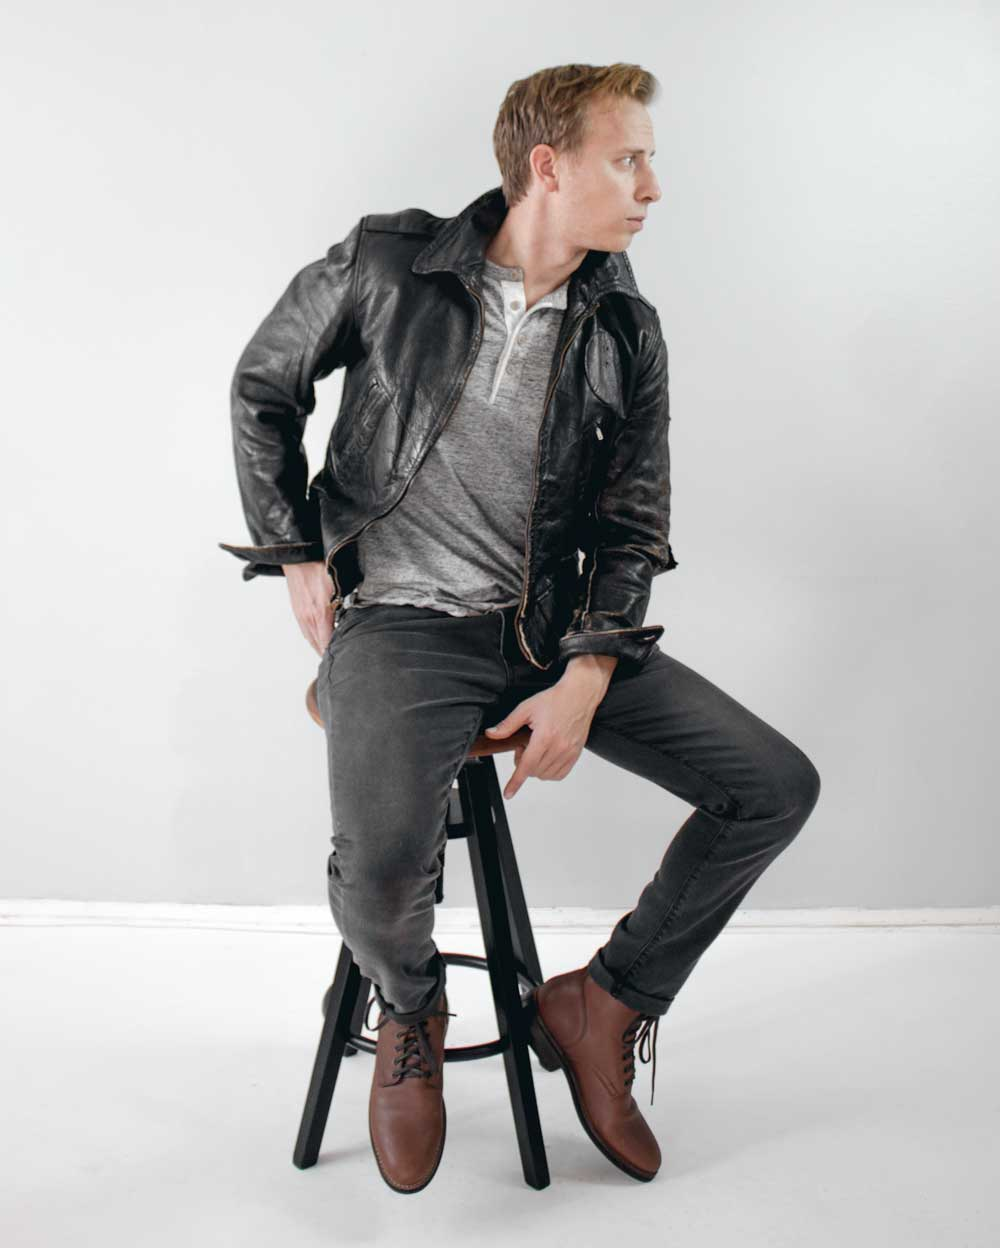 men street style leather jacket henley black jeans brown boots